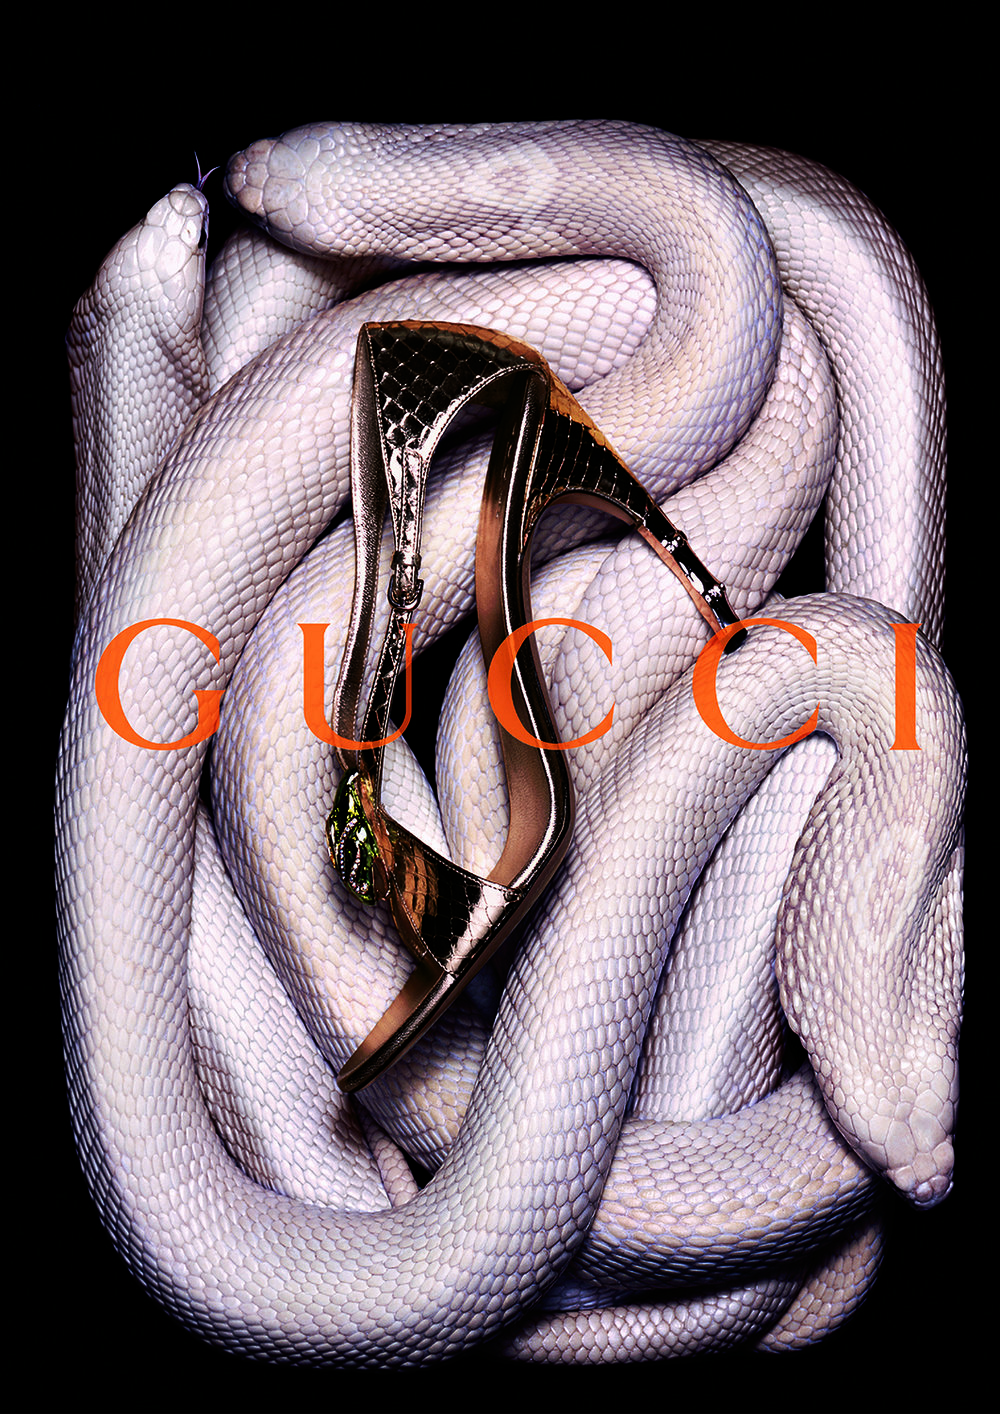 GUCCI ADS PB 33.jpg